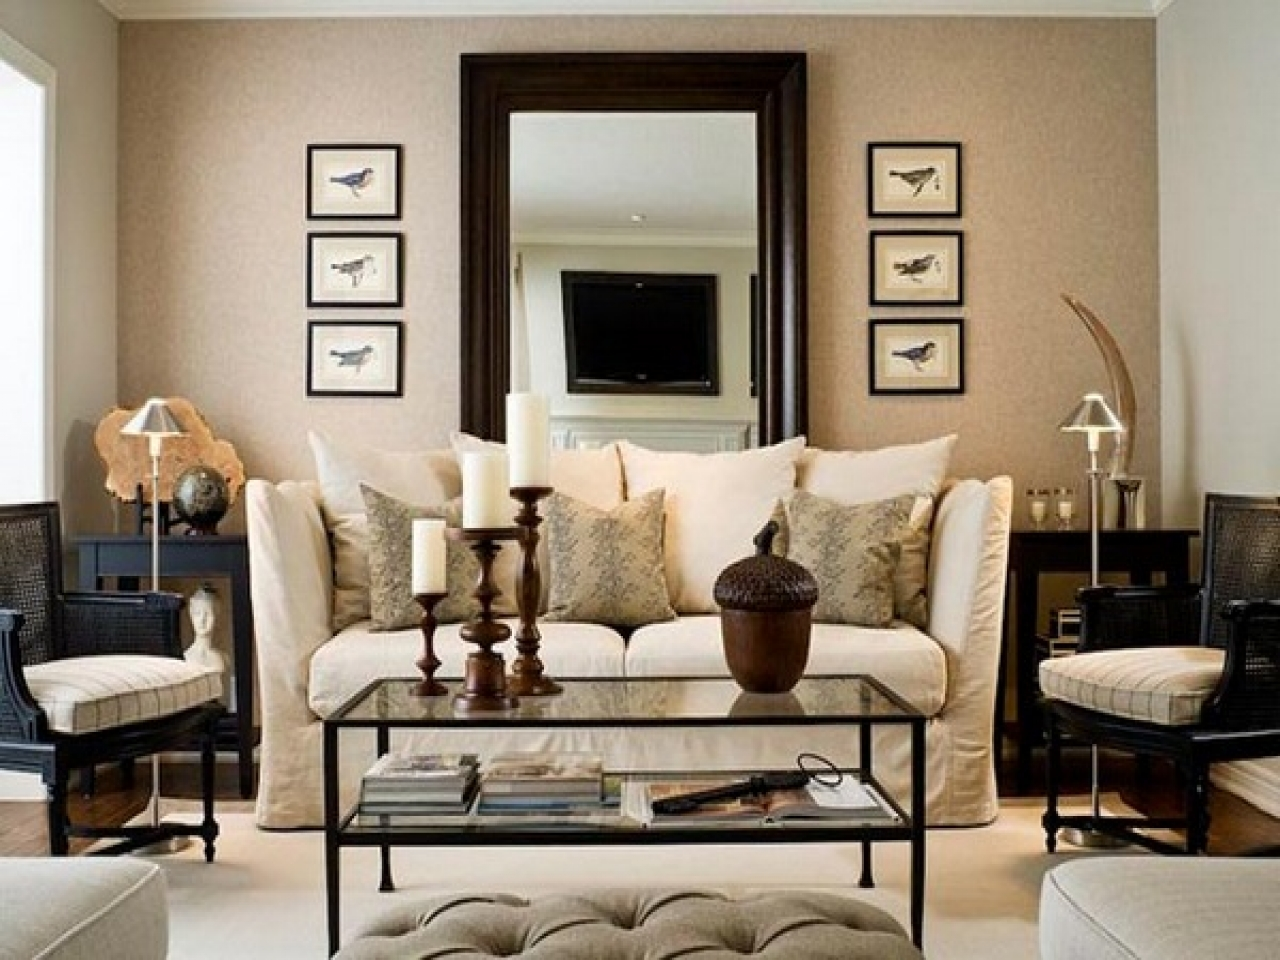 Stunning Wall Mirror Designs for your Living Room Decor on Wall Decor For Living Room  id=15547